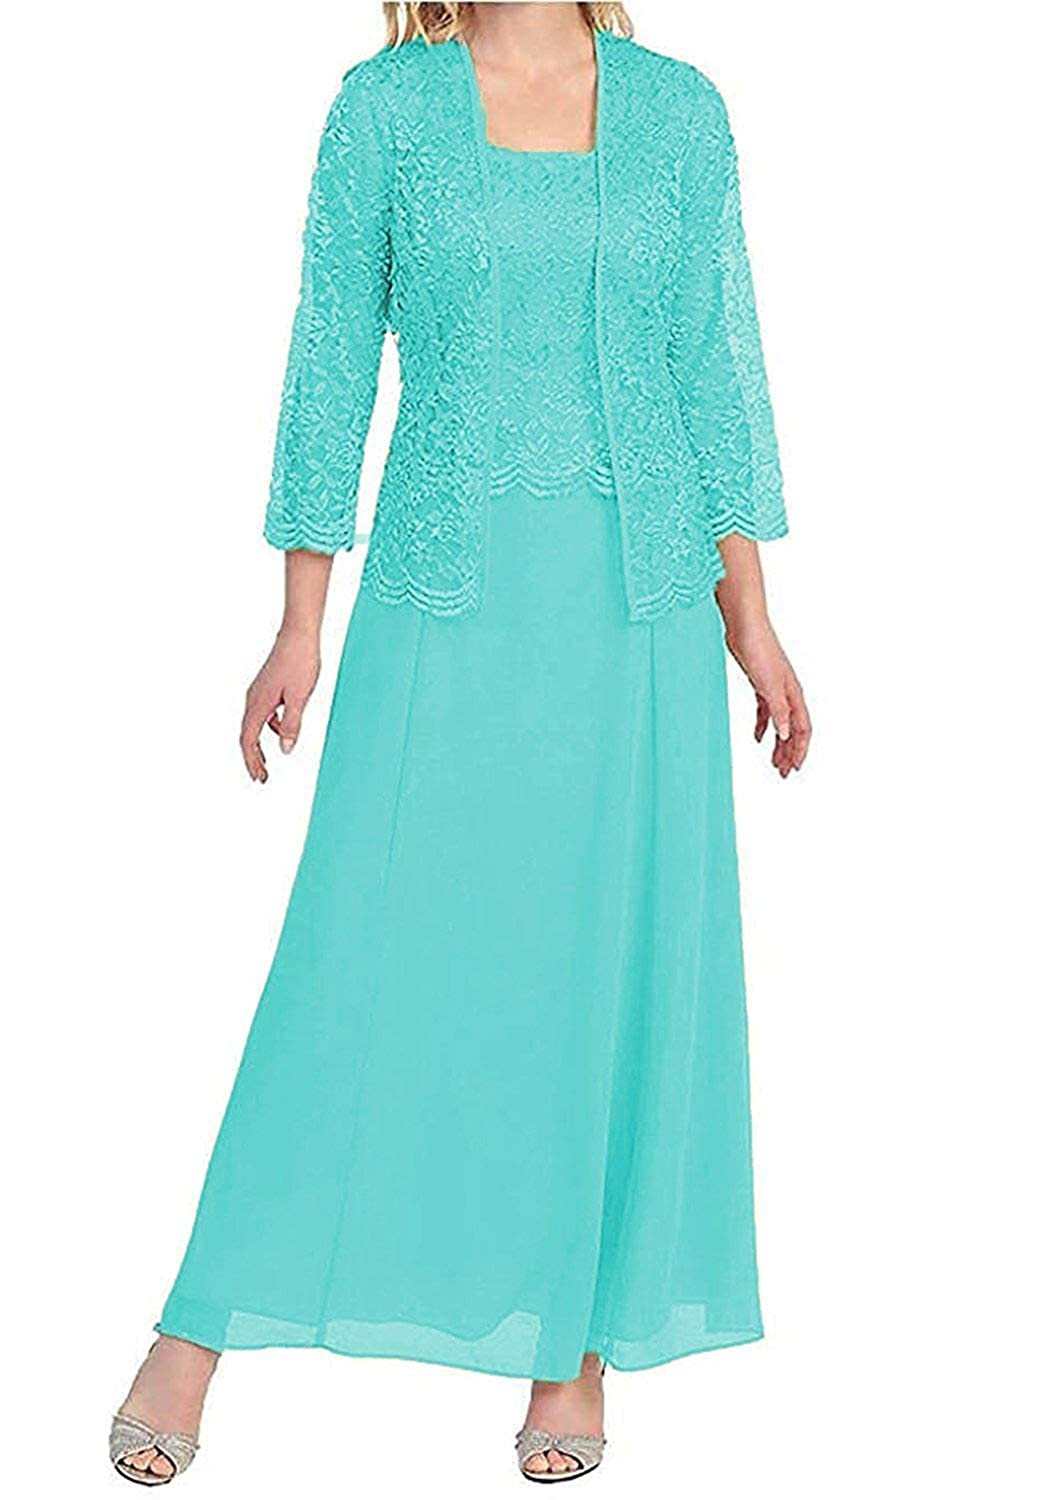 Turquoise Mother of The Bride Dresses with Jackets Formal Evening Gowns Long Sleeves Lace Mother Dress